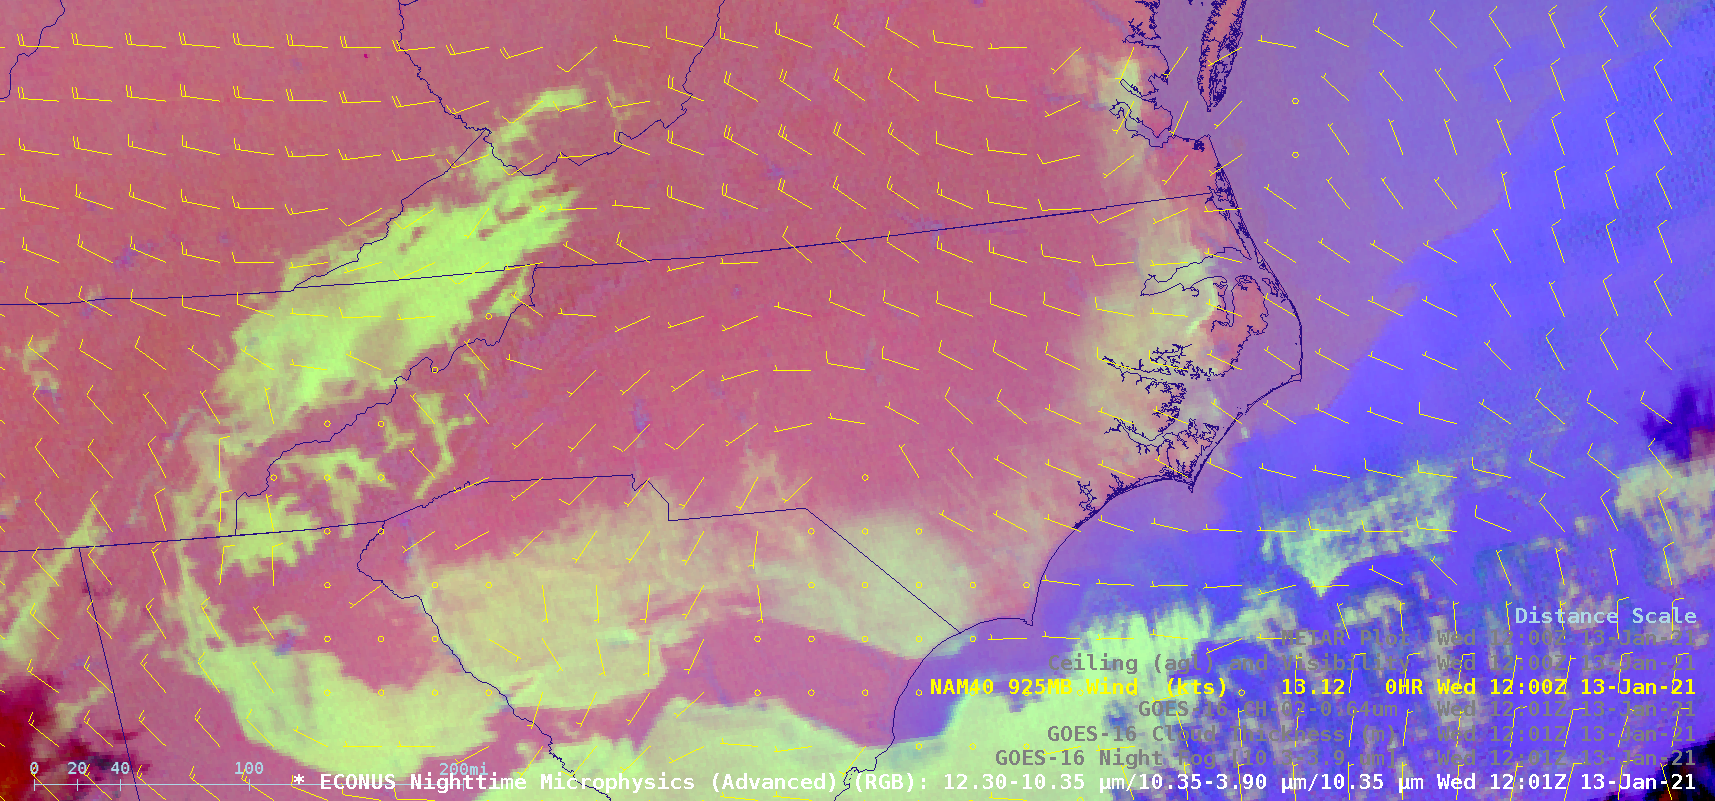 GOES-16 Nighttime Microphysics RGB image, with a plot of NAM40 model 925 hPa winds at 12 UTC [click to enlarge]